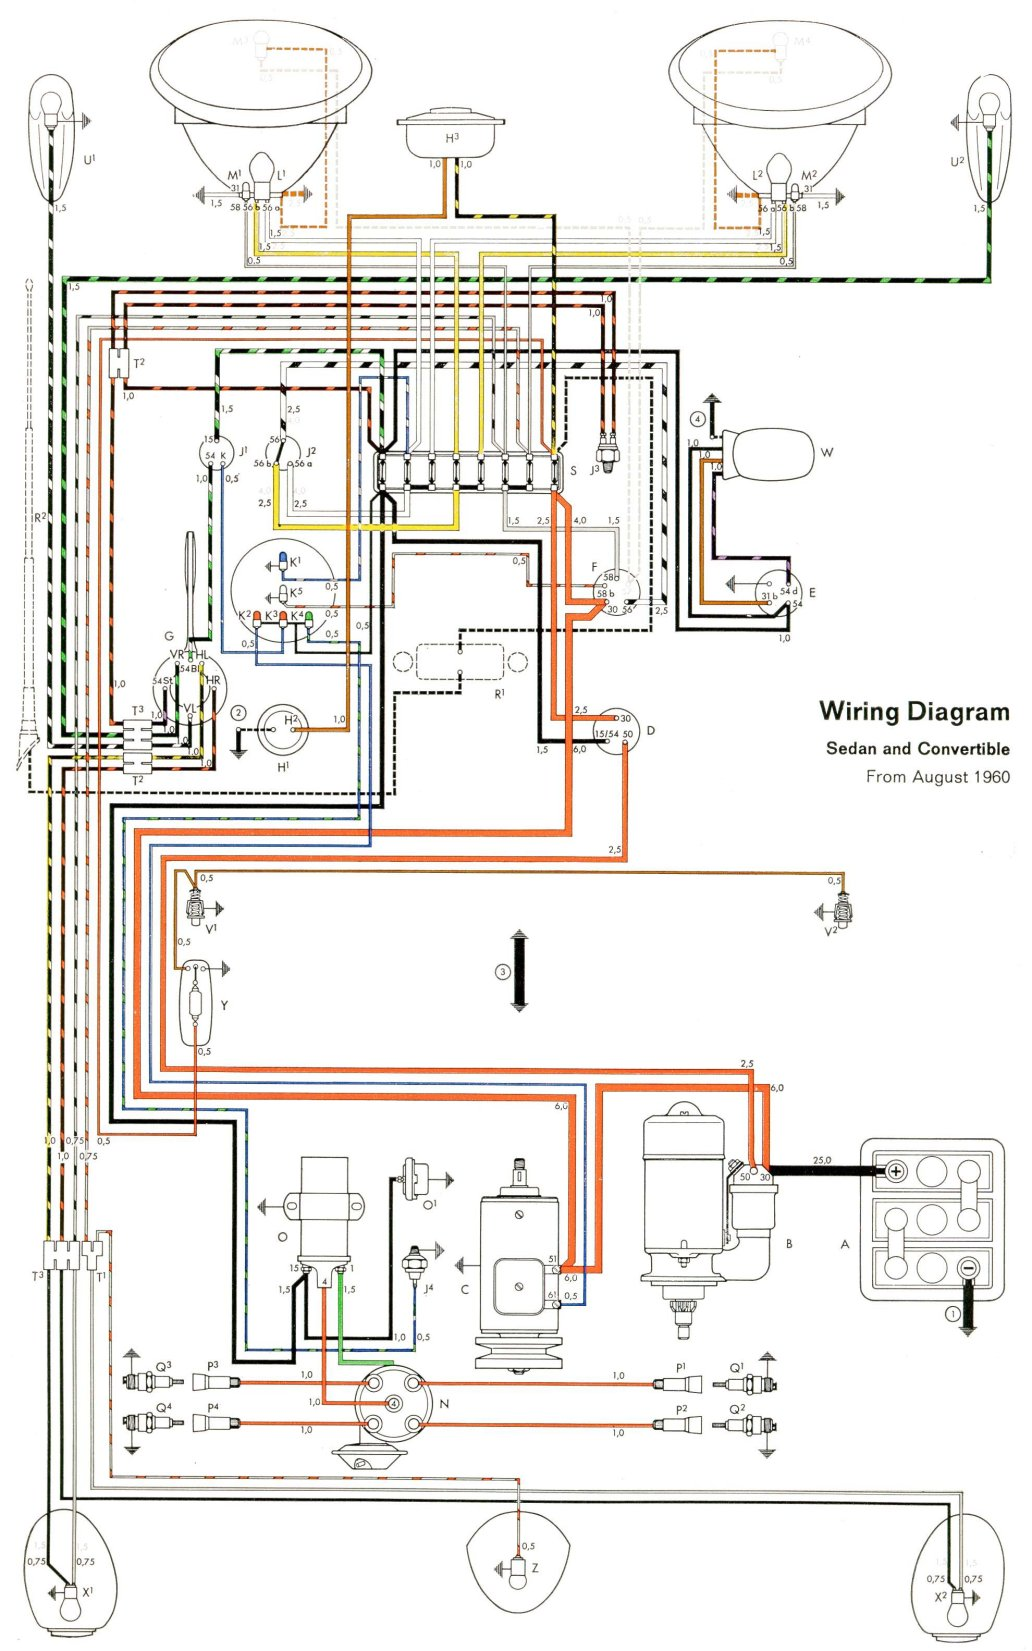 bug_61 free wiring diagrams \u2022 205 ufc co 1971 vw beetle wiring diagram at aneh.co